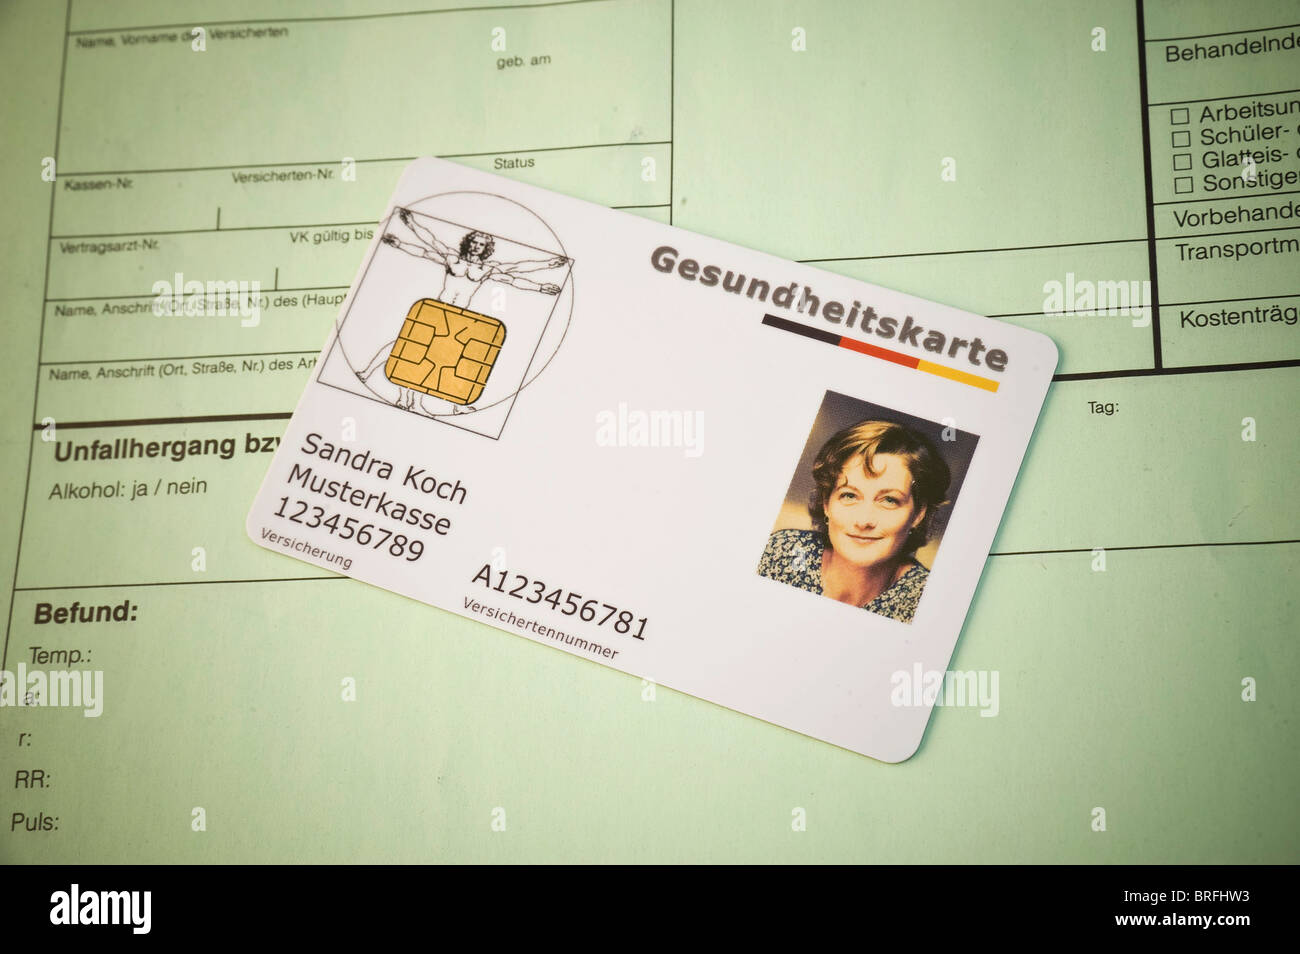 German electronic health insurance card on the forms - Stock Image